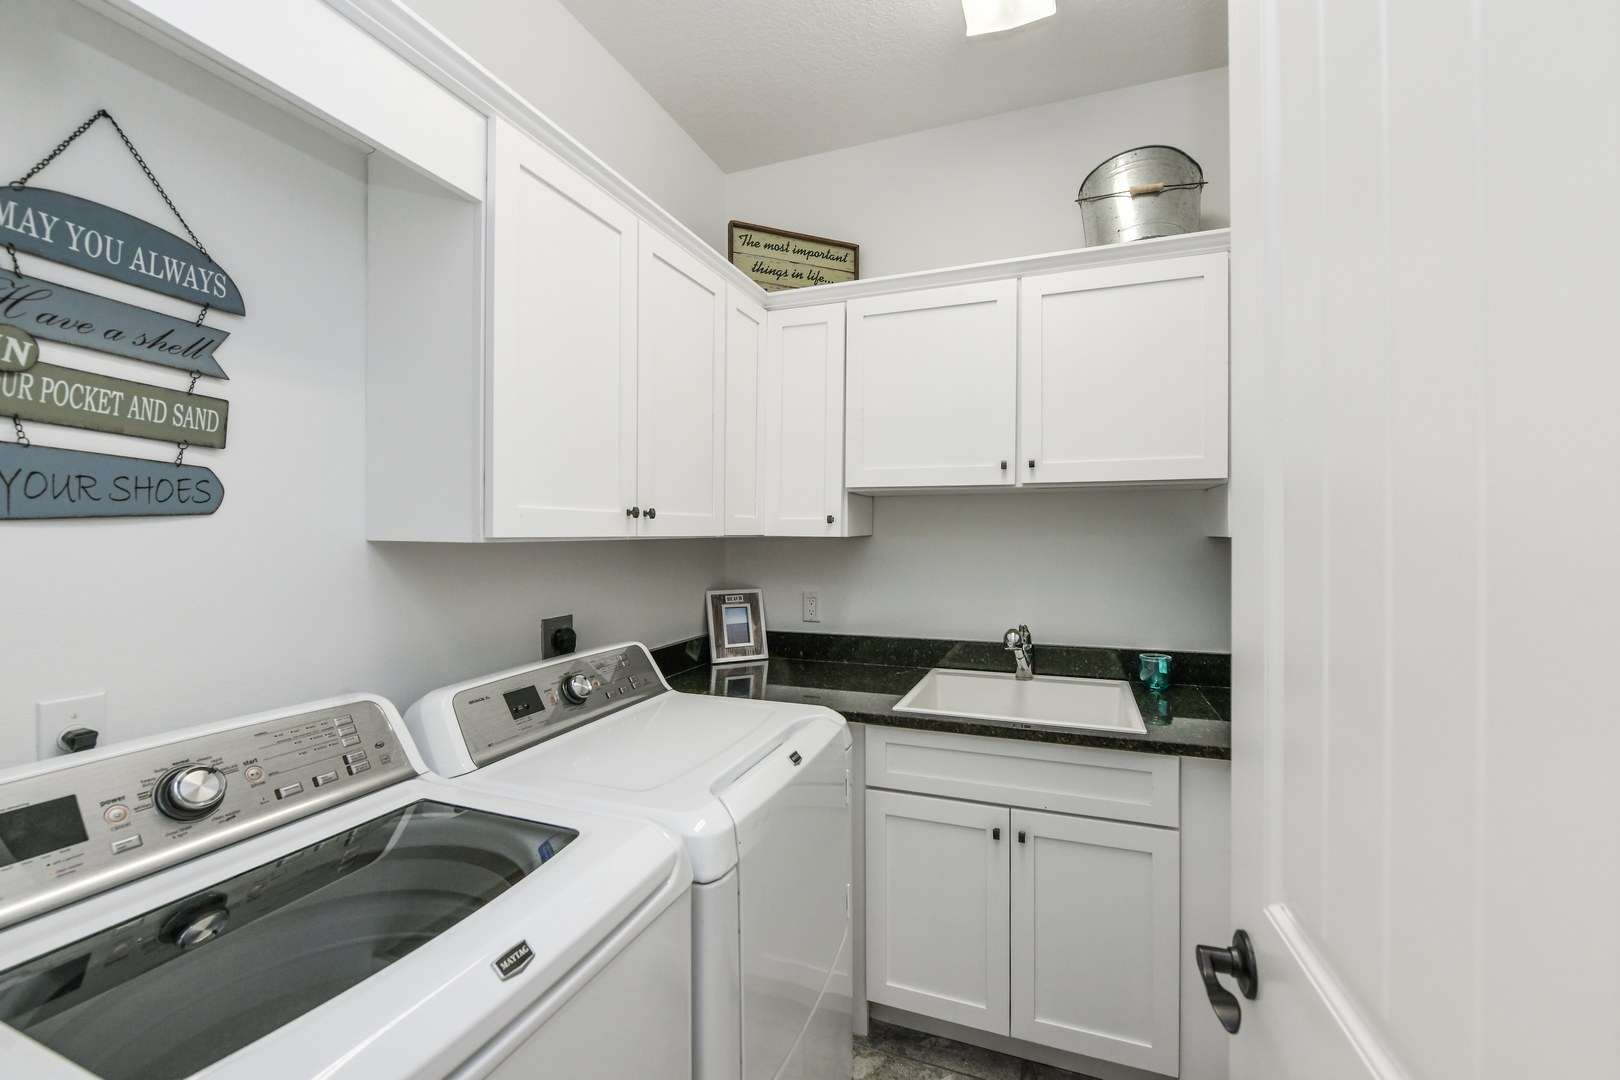 Laundry Room and Utility Sink